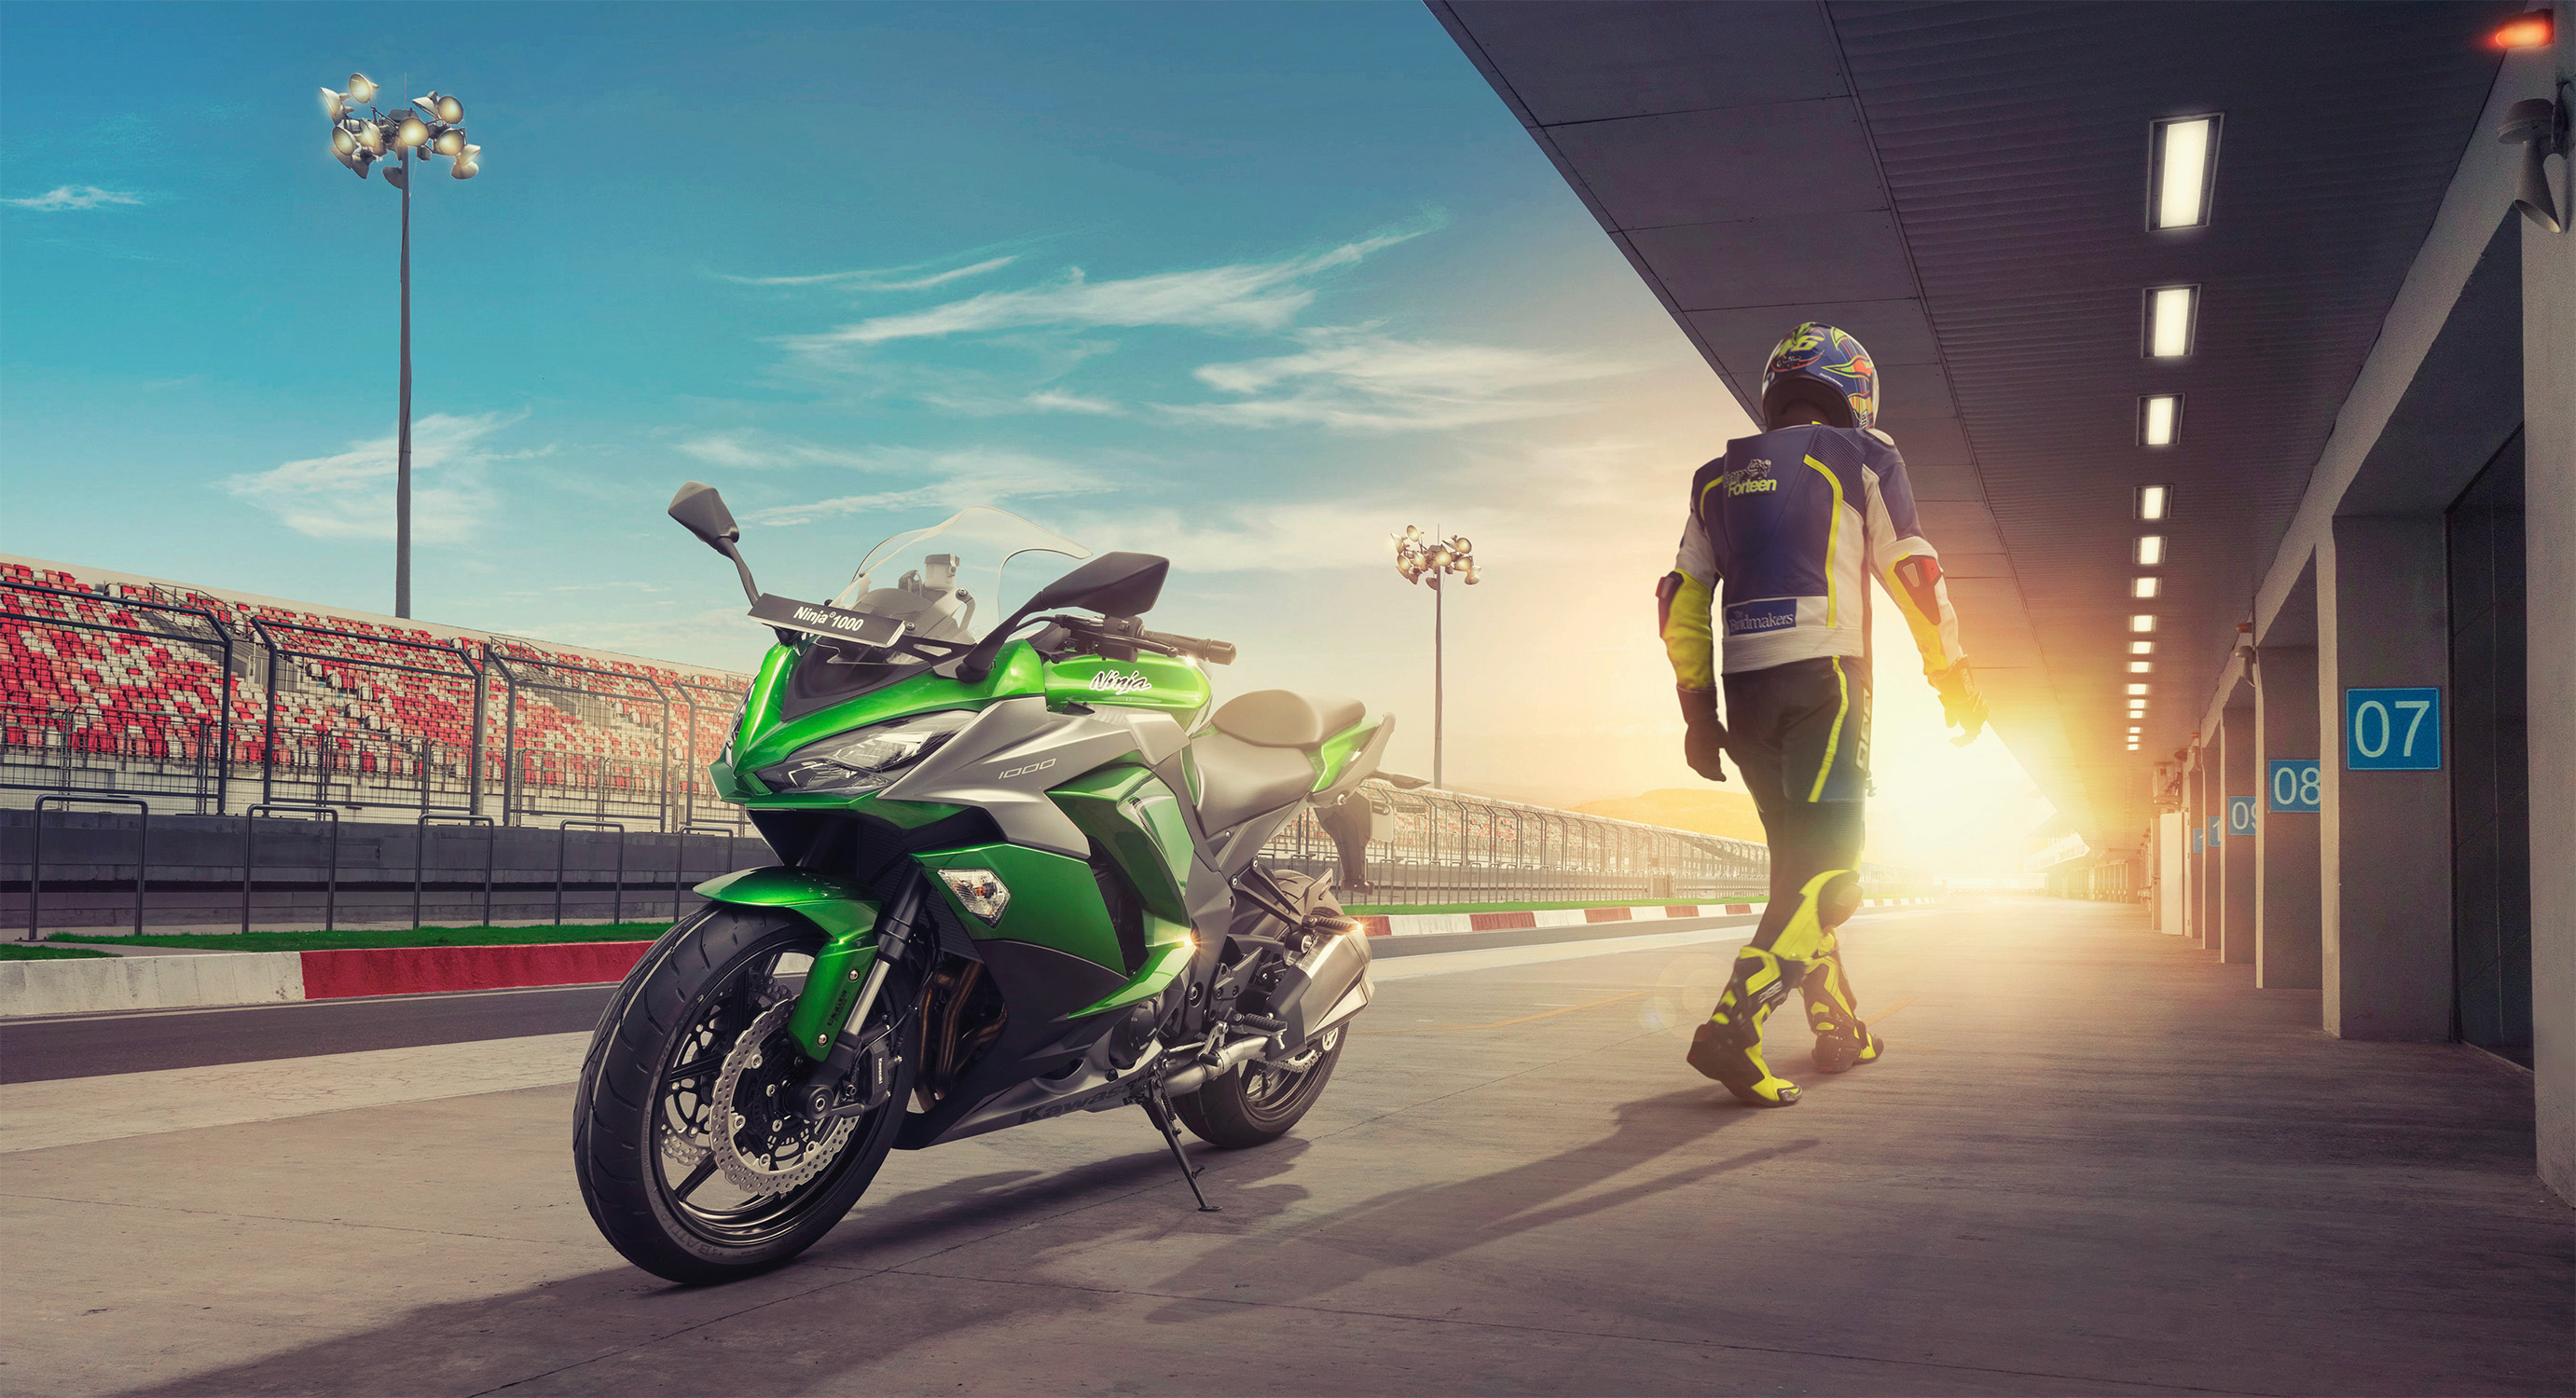 Kawasaki Ninja 1000, HD Bikes, 4k Wallpapers, Images